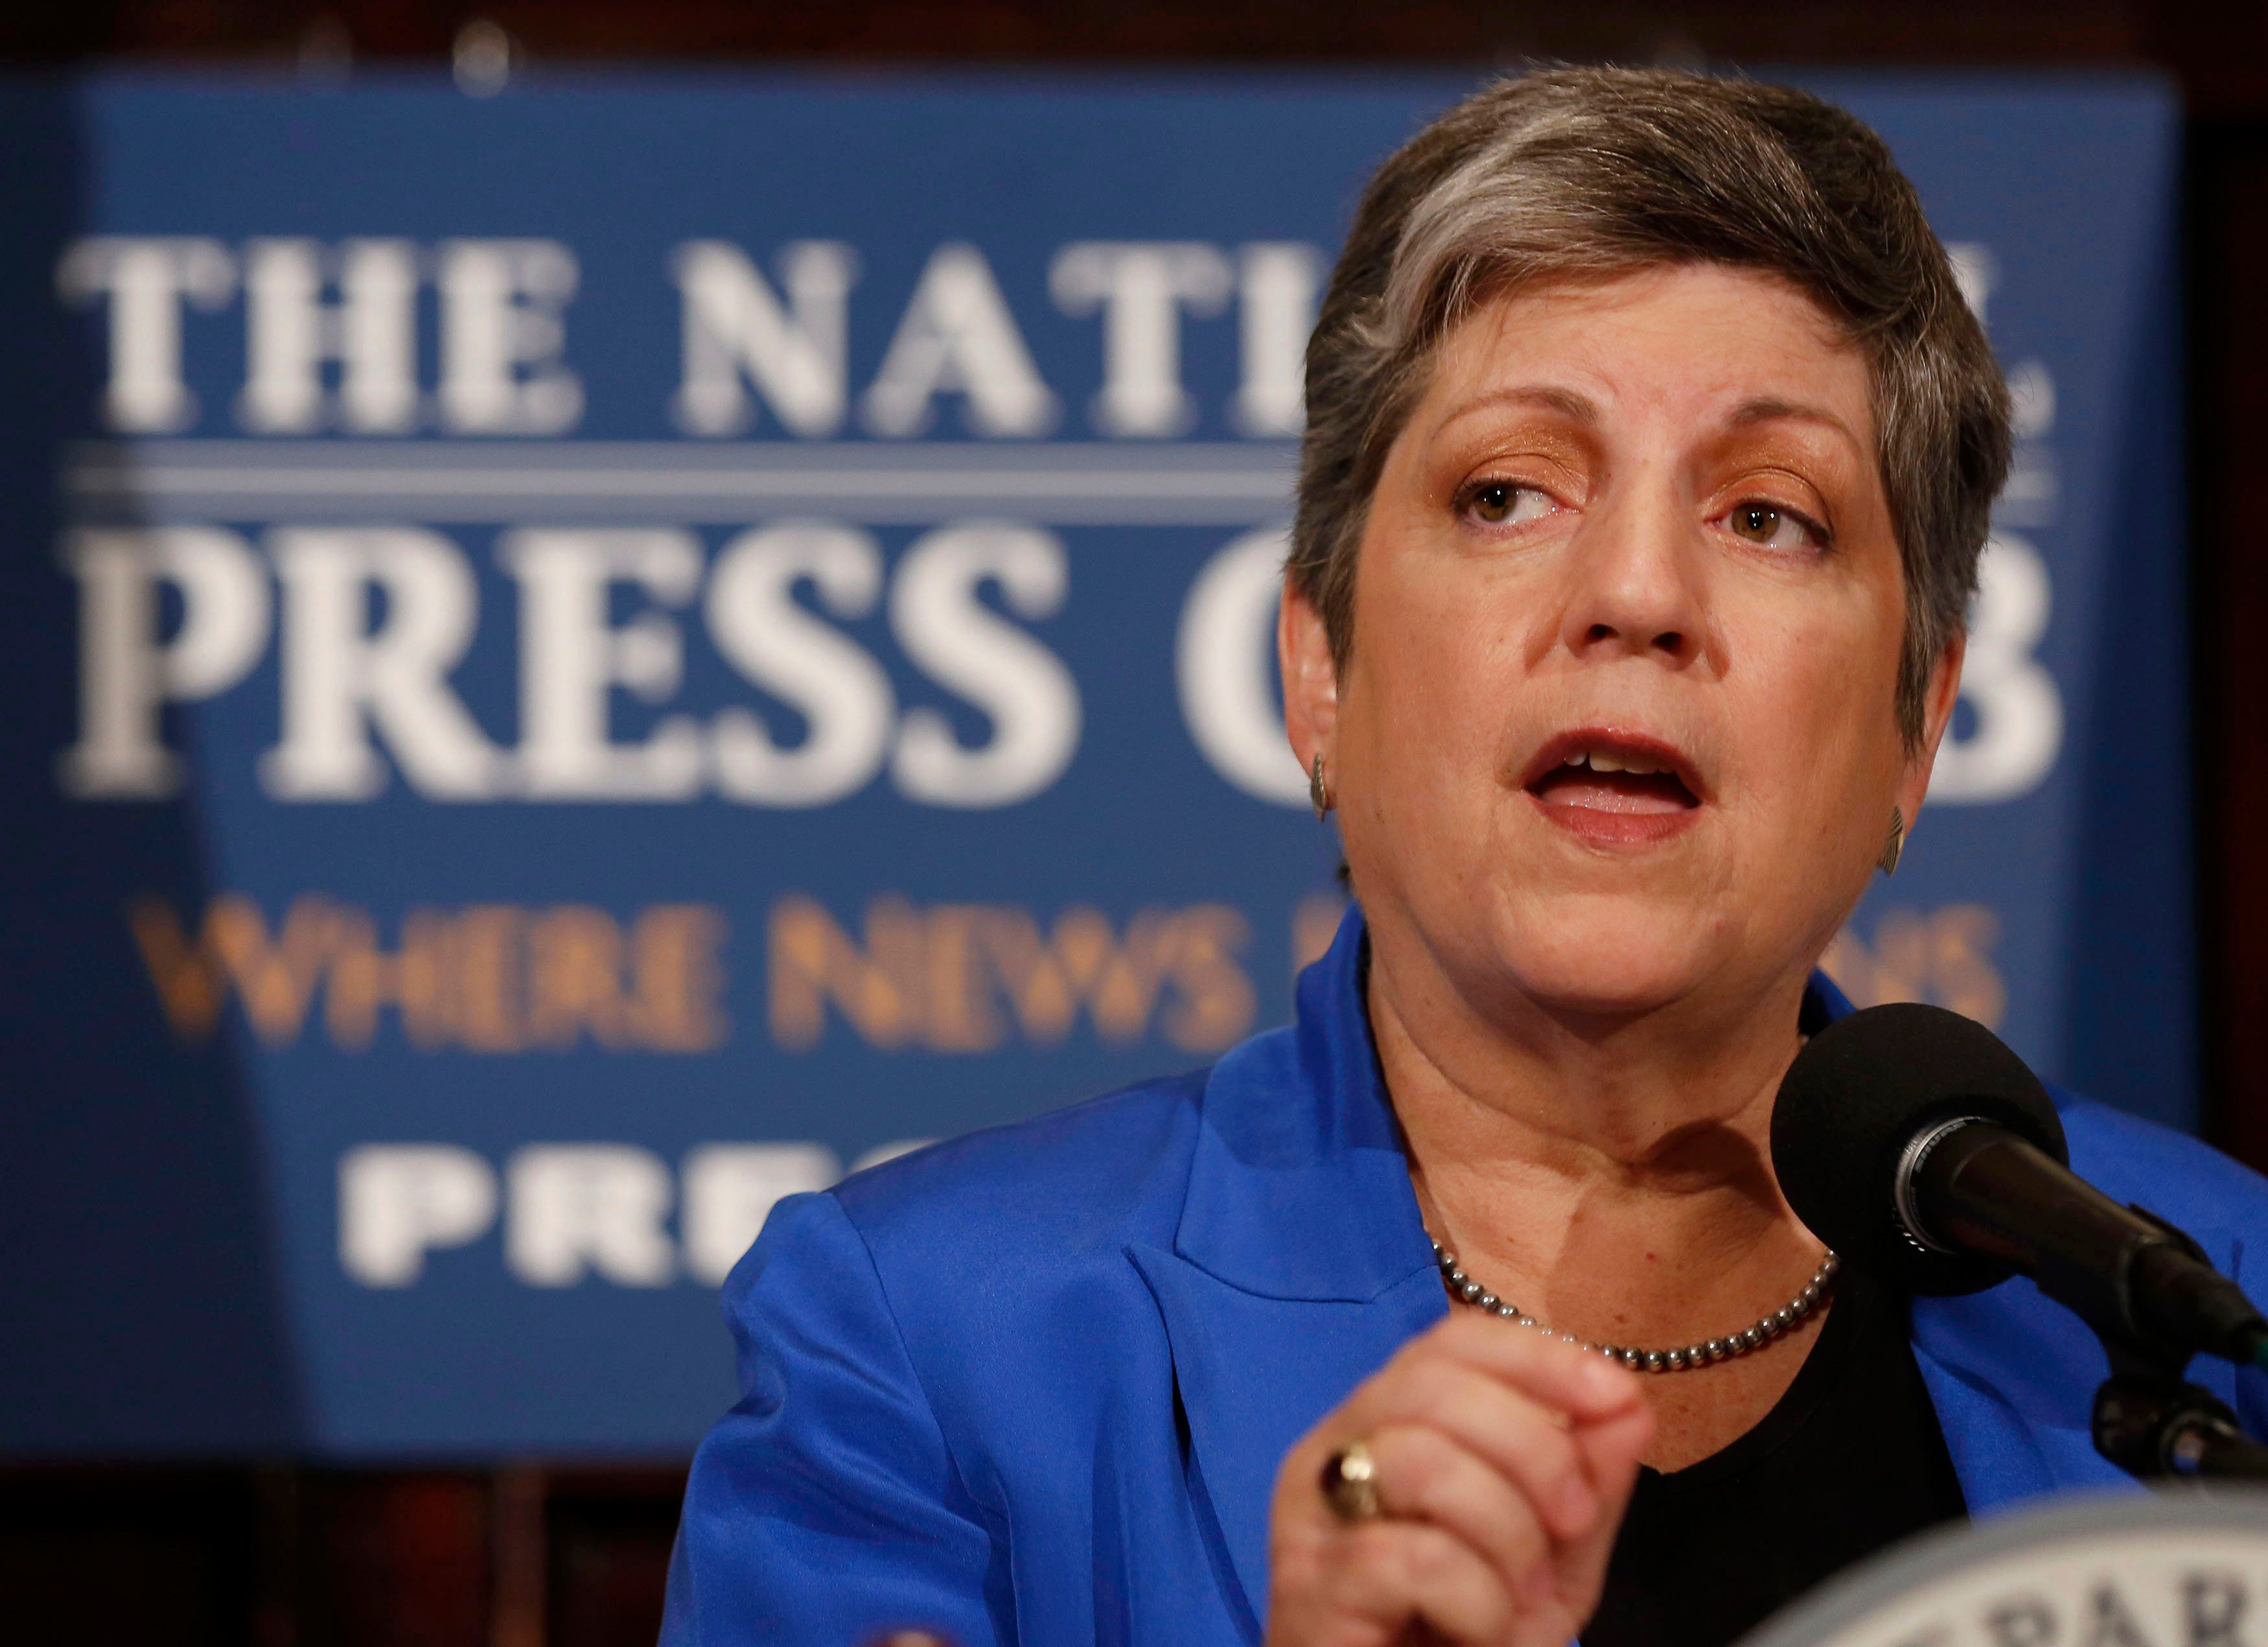 U.S. Secretary of Homeland Security Janet Napolitano gives her final official speech at the National Press Club in Washington, August 27, 2013.     REUTERS/Larry Downing  (UNITED STATES - Tags: POLITICS)